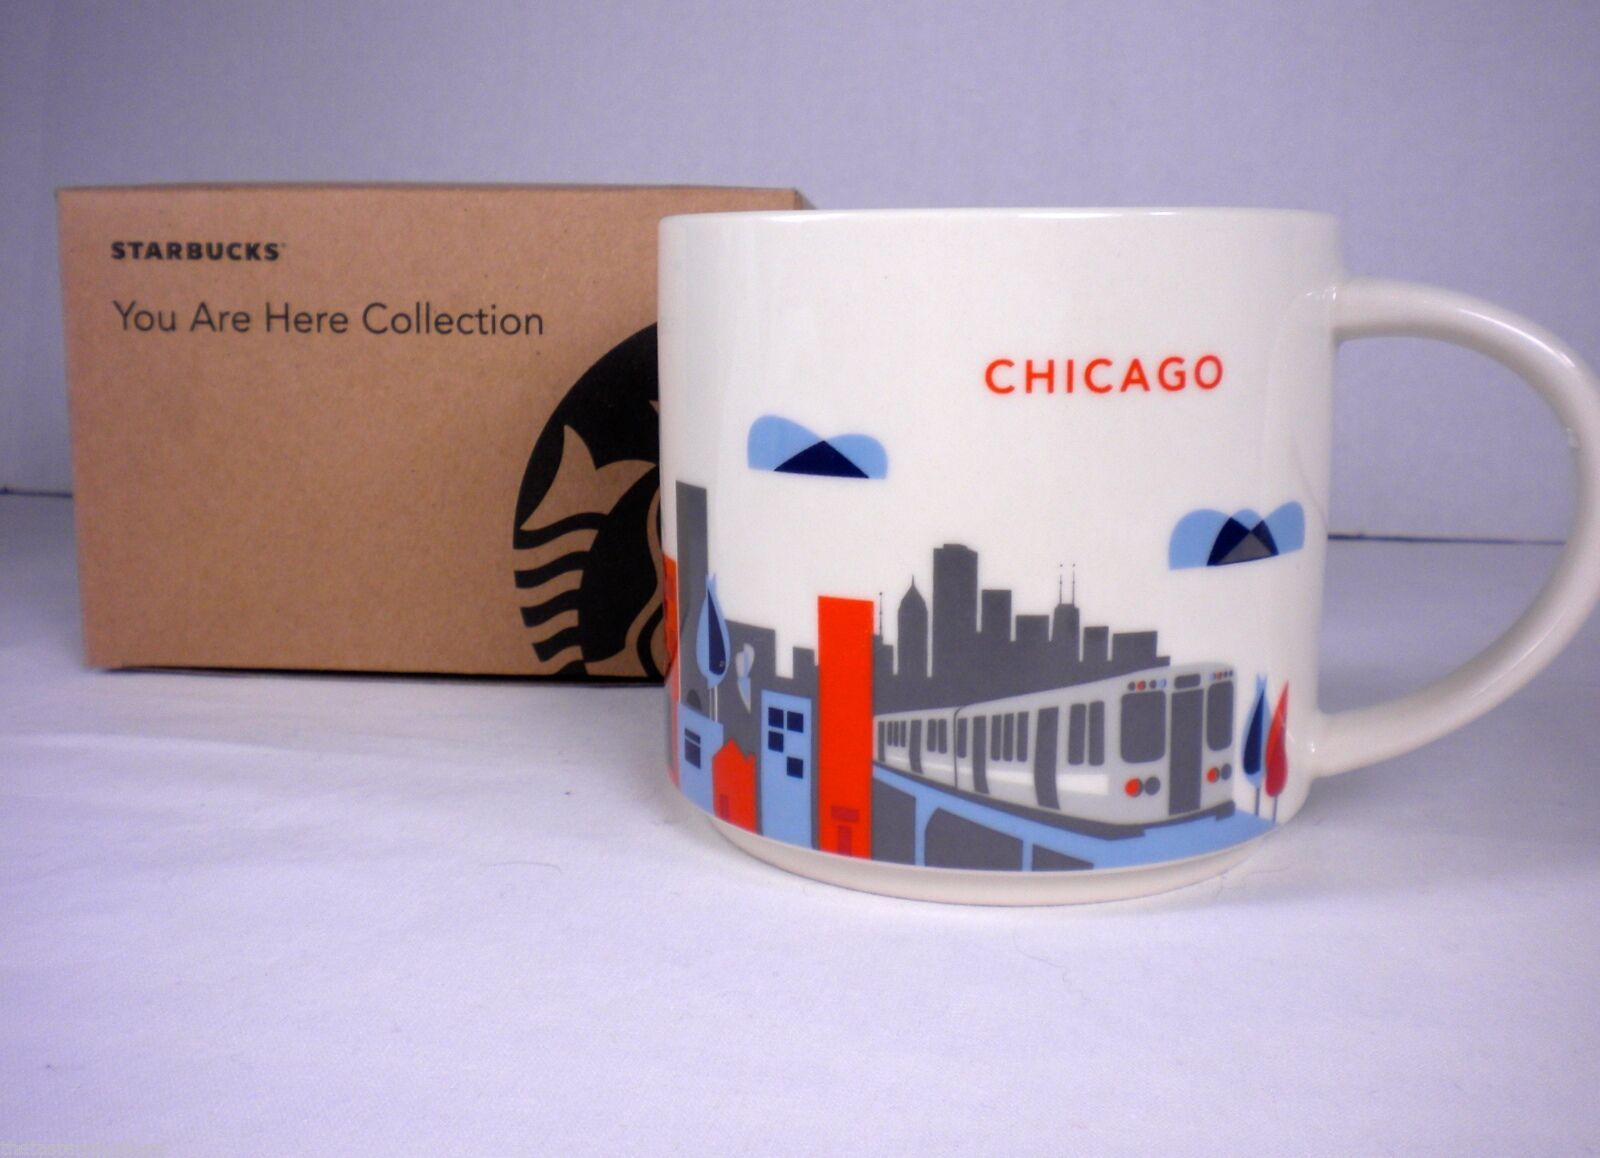 Starbucks Chicago You Are Here Collection Mug Cup NEW in Box Skyline, L Train image 2